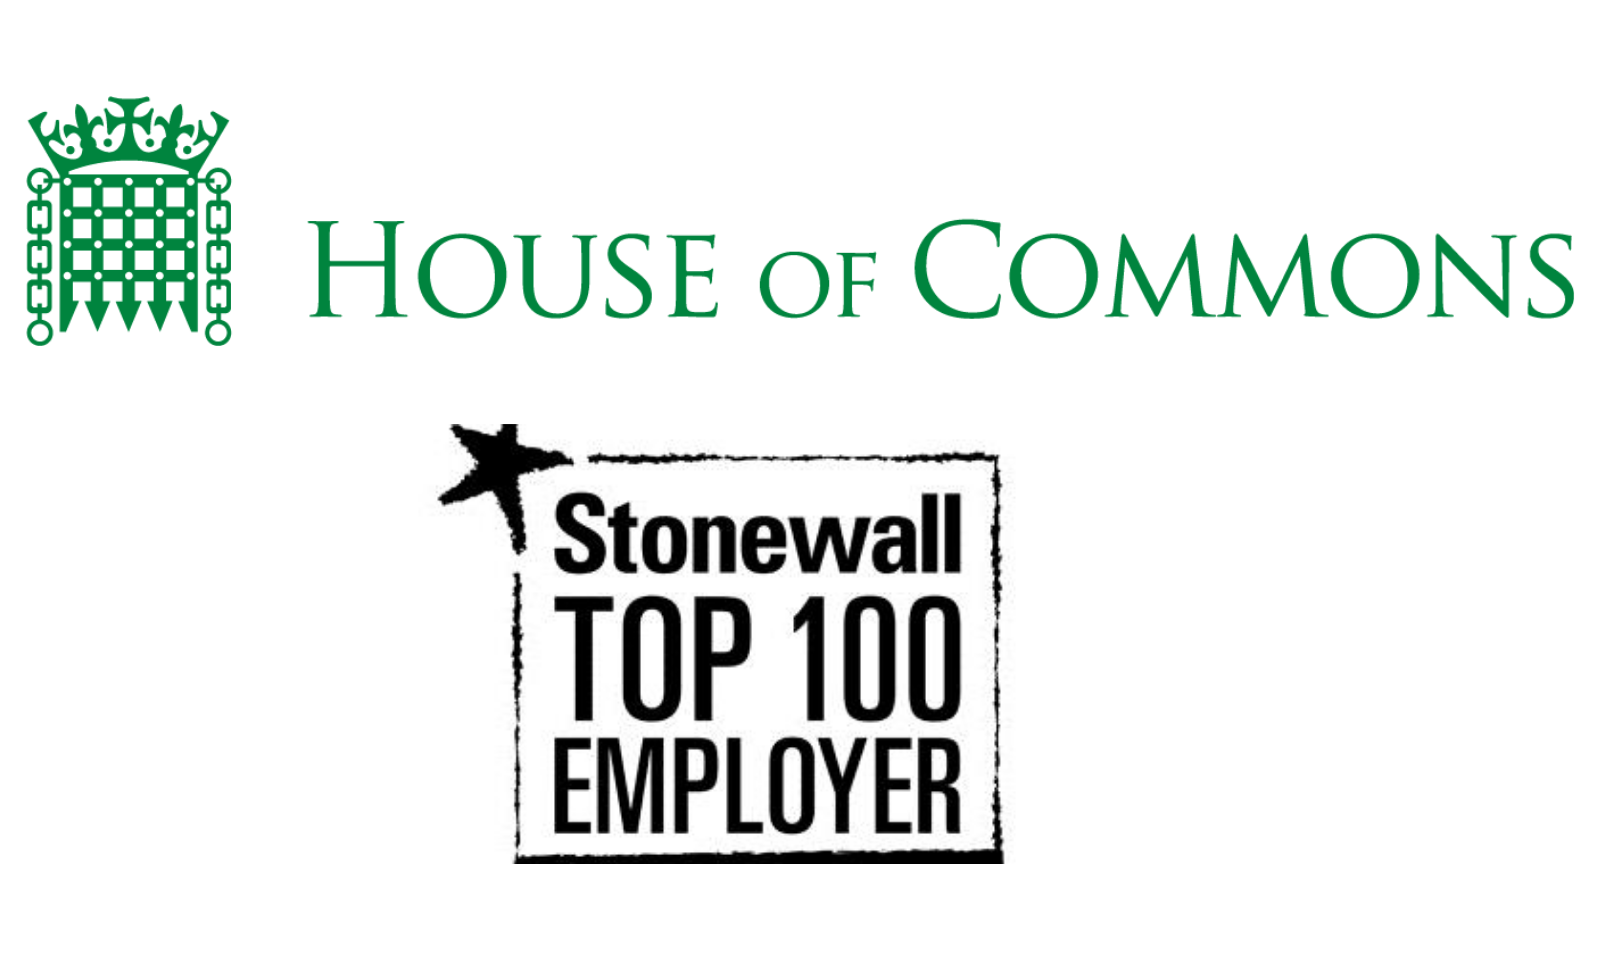 House of commons log and Stonewall Top 100 Employer logo